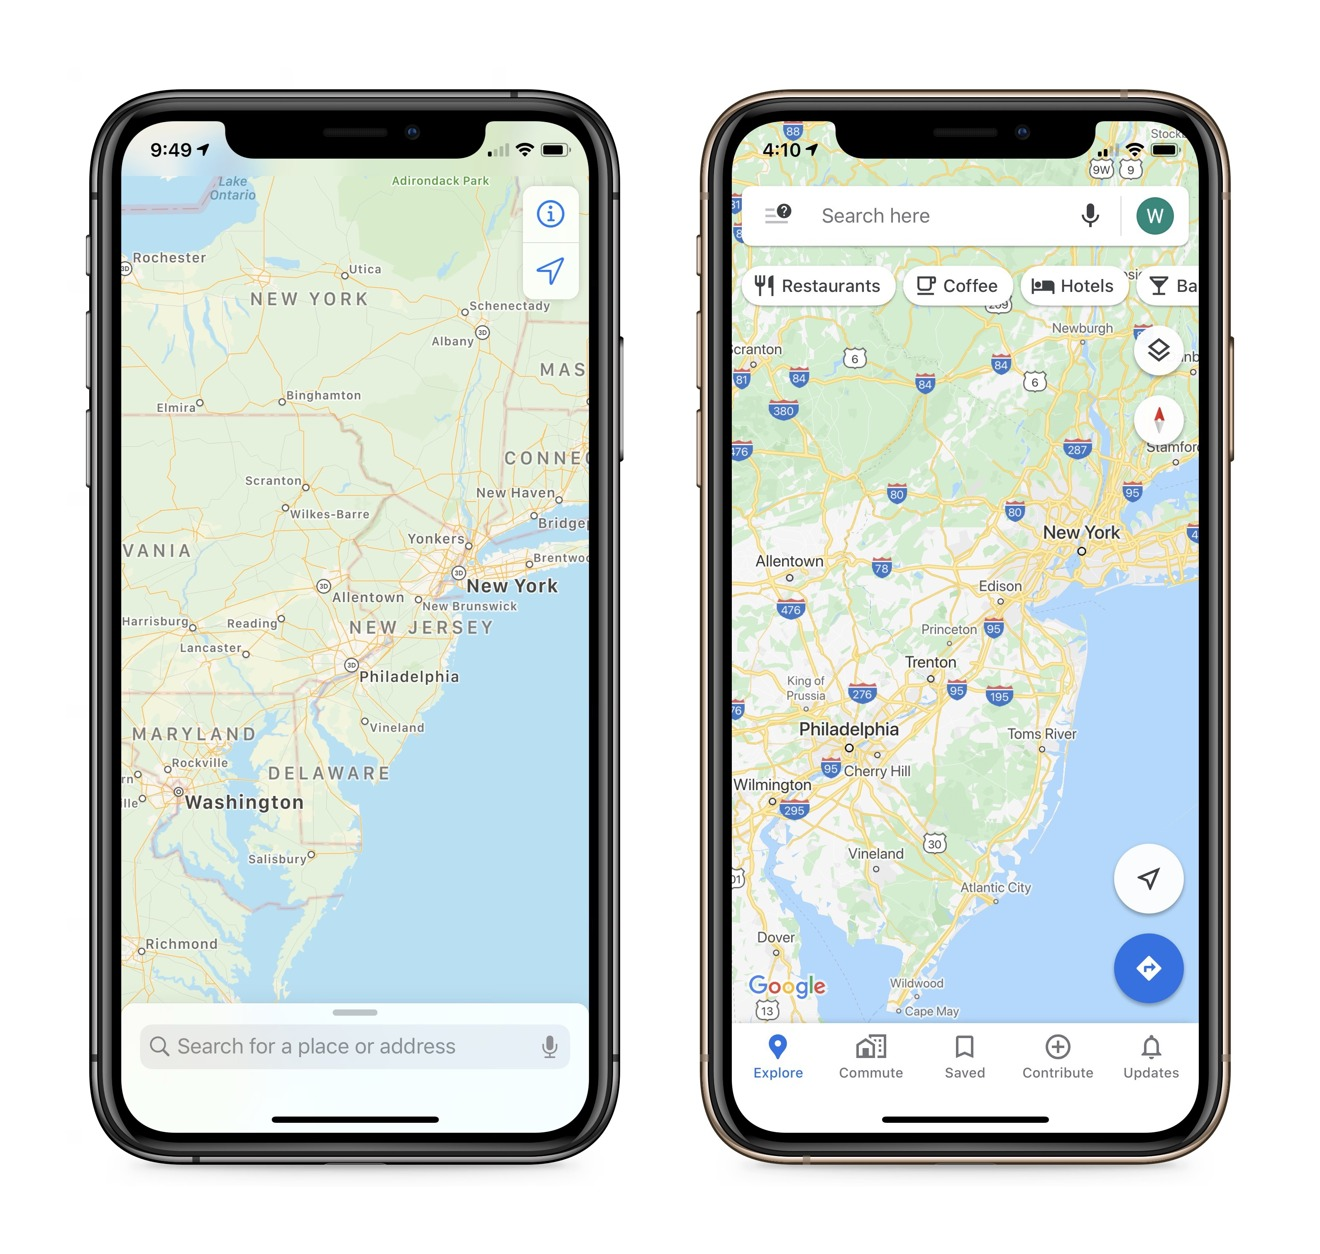 Google prioritized navigation data like highways where Apple prioritized readability at scale